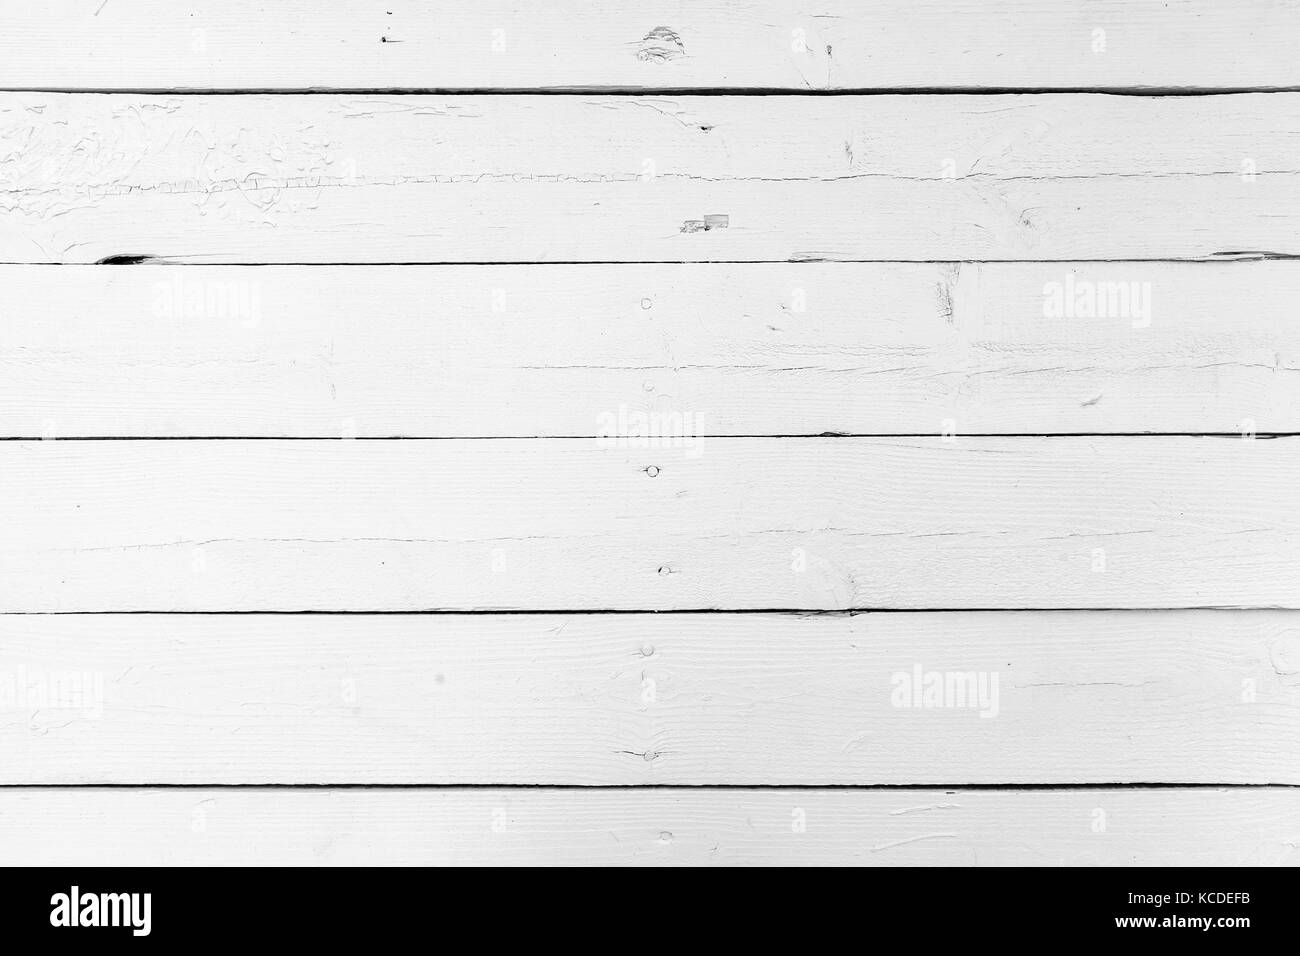 Natural white wooden wall made of planks connected with nails, background photo texture - Stock Image